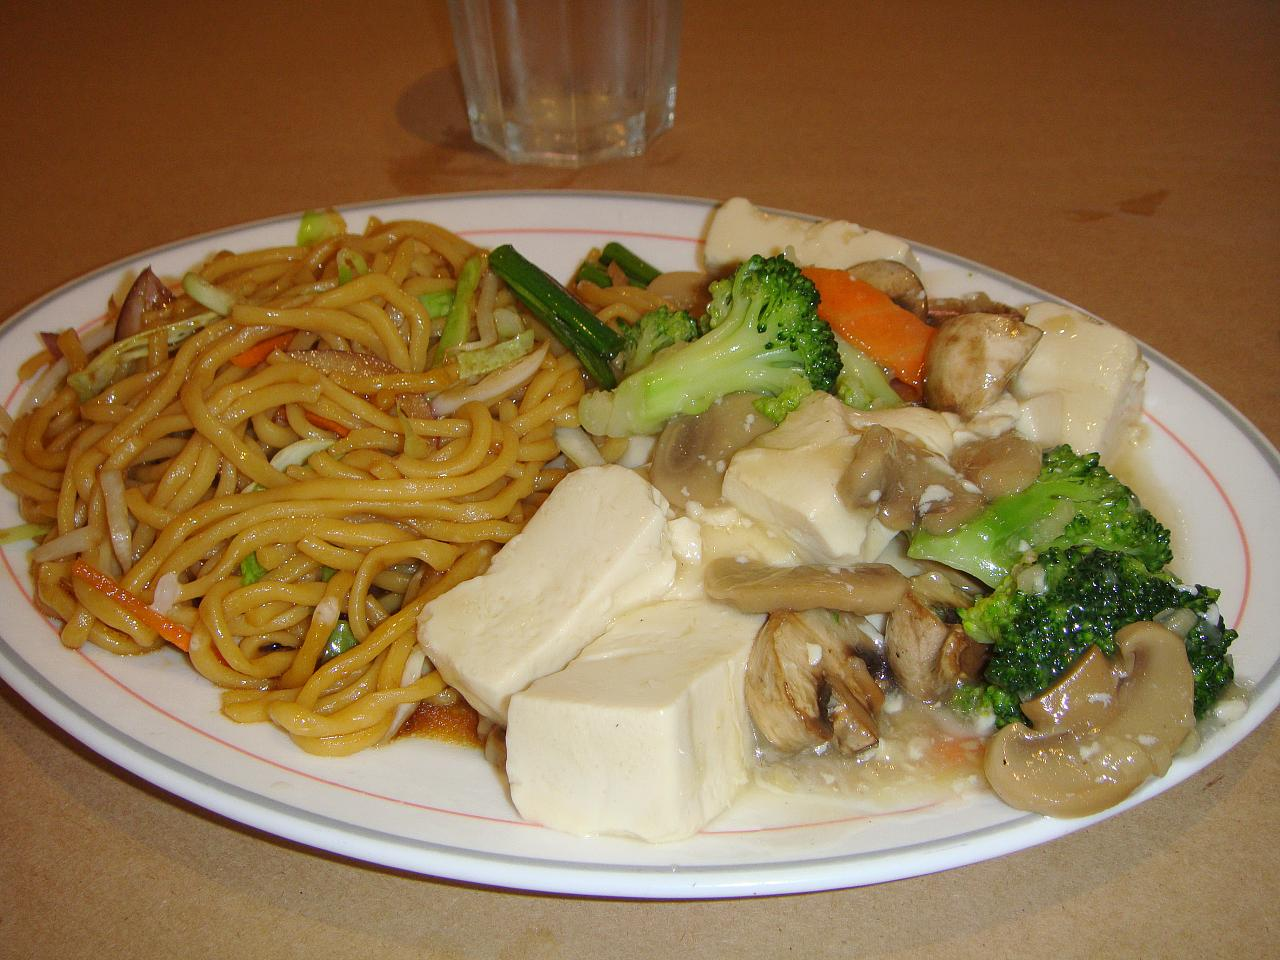 Tofu and Broccoli with Black Mushrooms